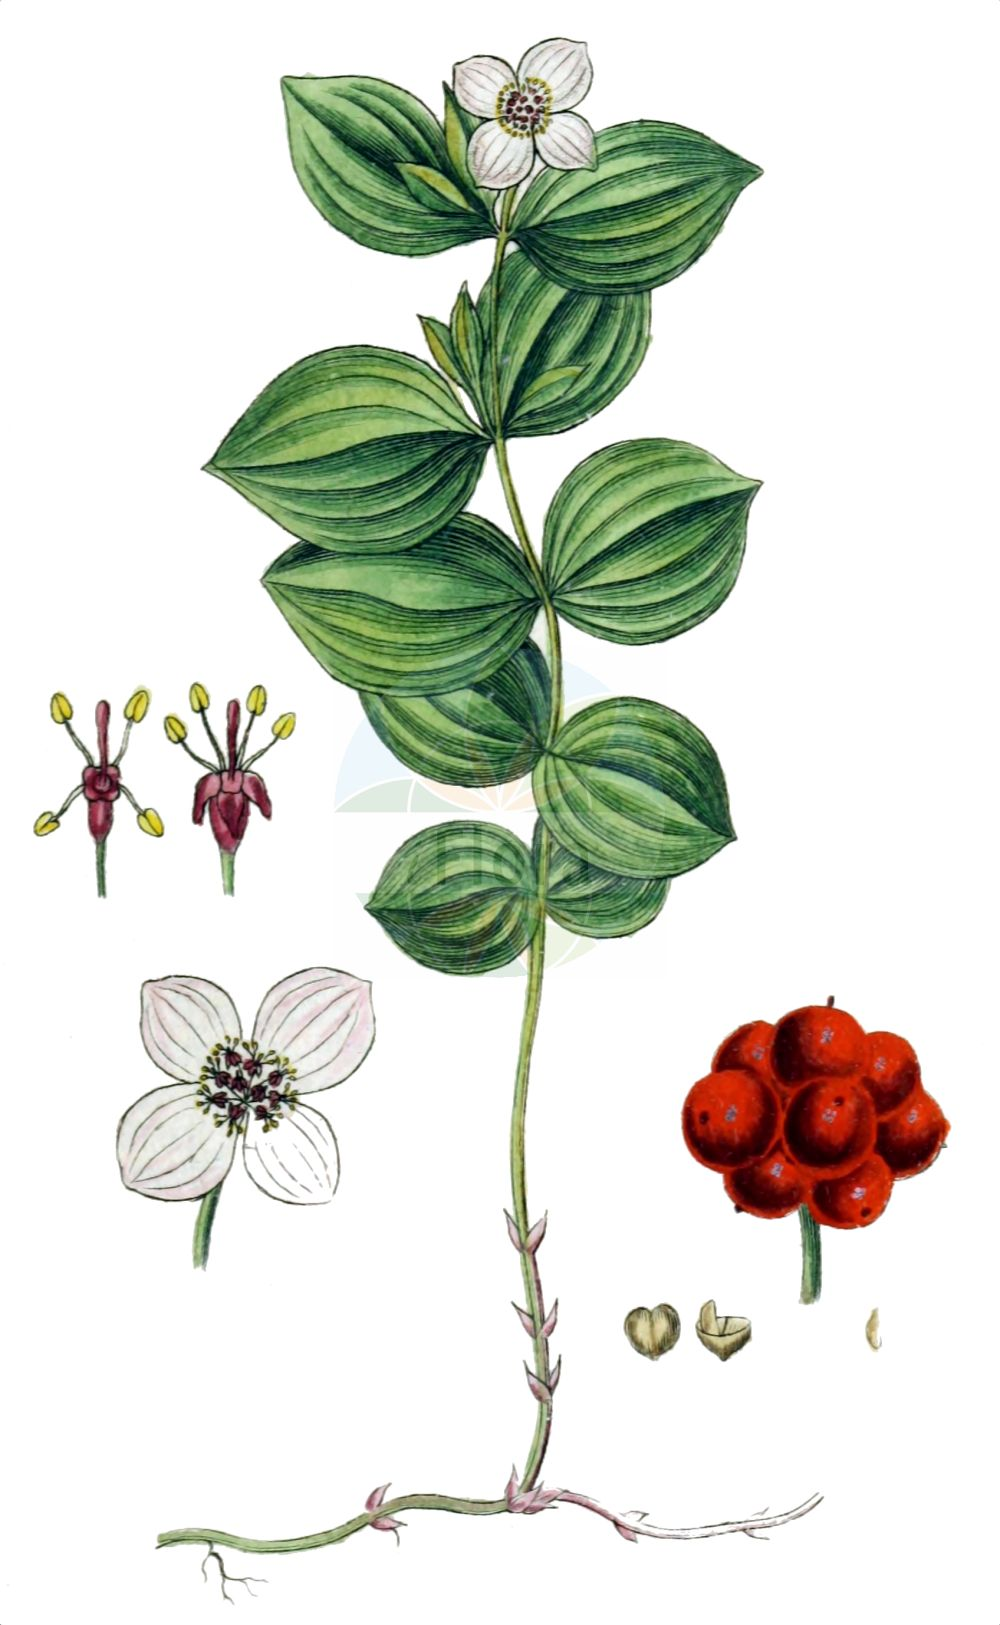 Historische Abbildung von Cornus suecica (Schwedischer Hartriegel - Dwarf Cornel). Das Bild zeigt Blatt, Bluete, Frucht und Same. ---- Historical Drawing of Cornus suecica (Schwedischer Hartriegel - Dwarf Cornel).The image is showing leaf, flower, fruit and seed.(Cornus suecica,Schwedischer Hartriegel,Dwarf Cornel,Arctocrania suecica,Chamaepericlymenum suecicum,Cornella suecica,Cornus biramis,Cornus borealis,Cornus herbacea,Cornus instolonea,Cornus suecica,Eukrania suecica,Ossea instolonea,Swida instolonea,Thelycrania instolonea,Schwedischer Hartriegel,Dwarf Cornel,Lapland Cornel,Cornus,Hartriegel,Cornel,Cornaceae,Hartriegelgewaechse,Dogwood family,Blatt,Bluete,Frucht,Same,leaf,flower,fruit,seed,Sturm (1796f))